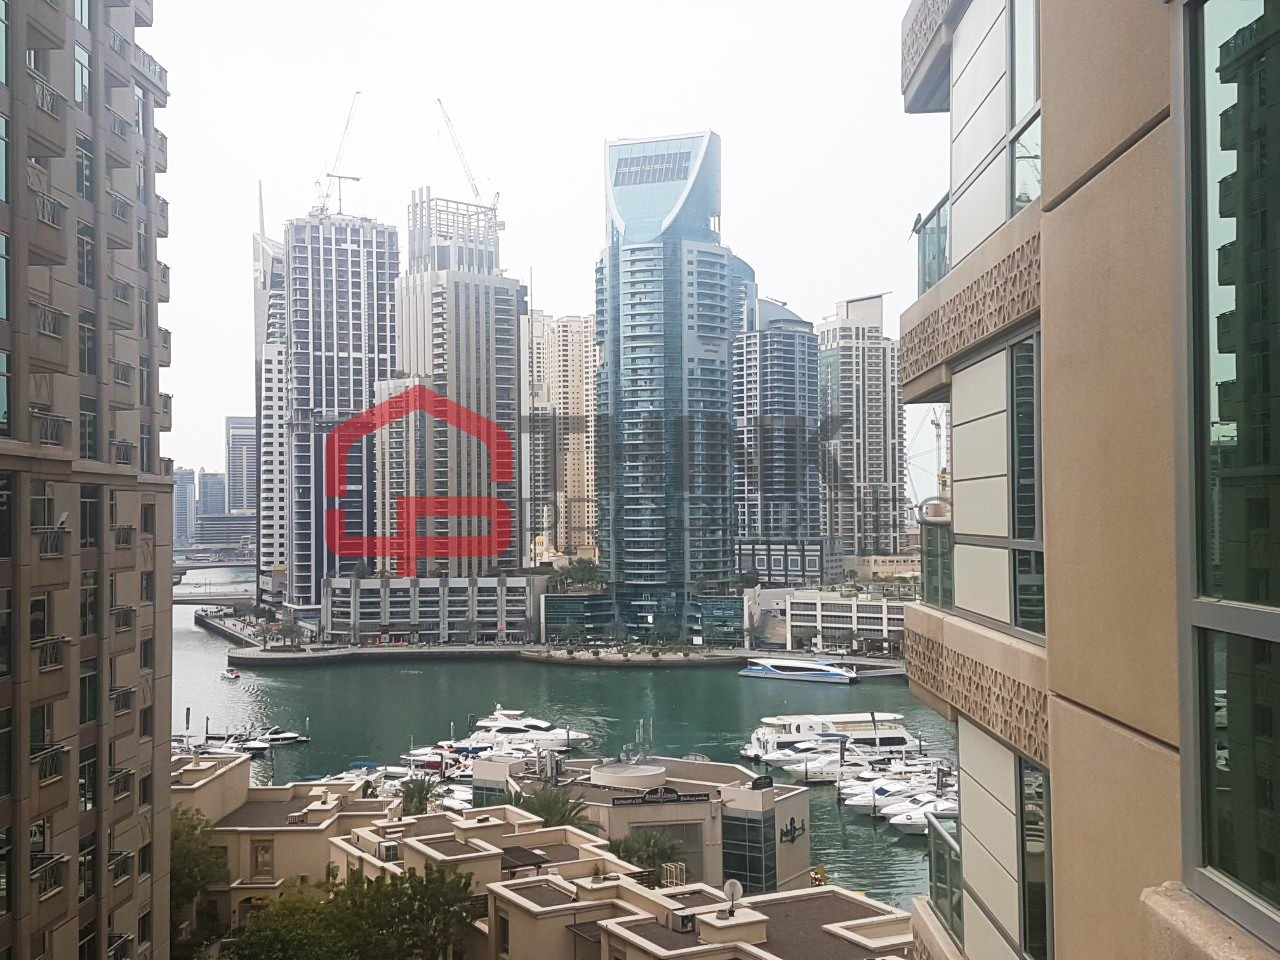 Chiller Free Huge 2 BR + Study Marina View